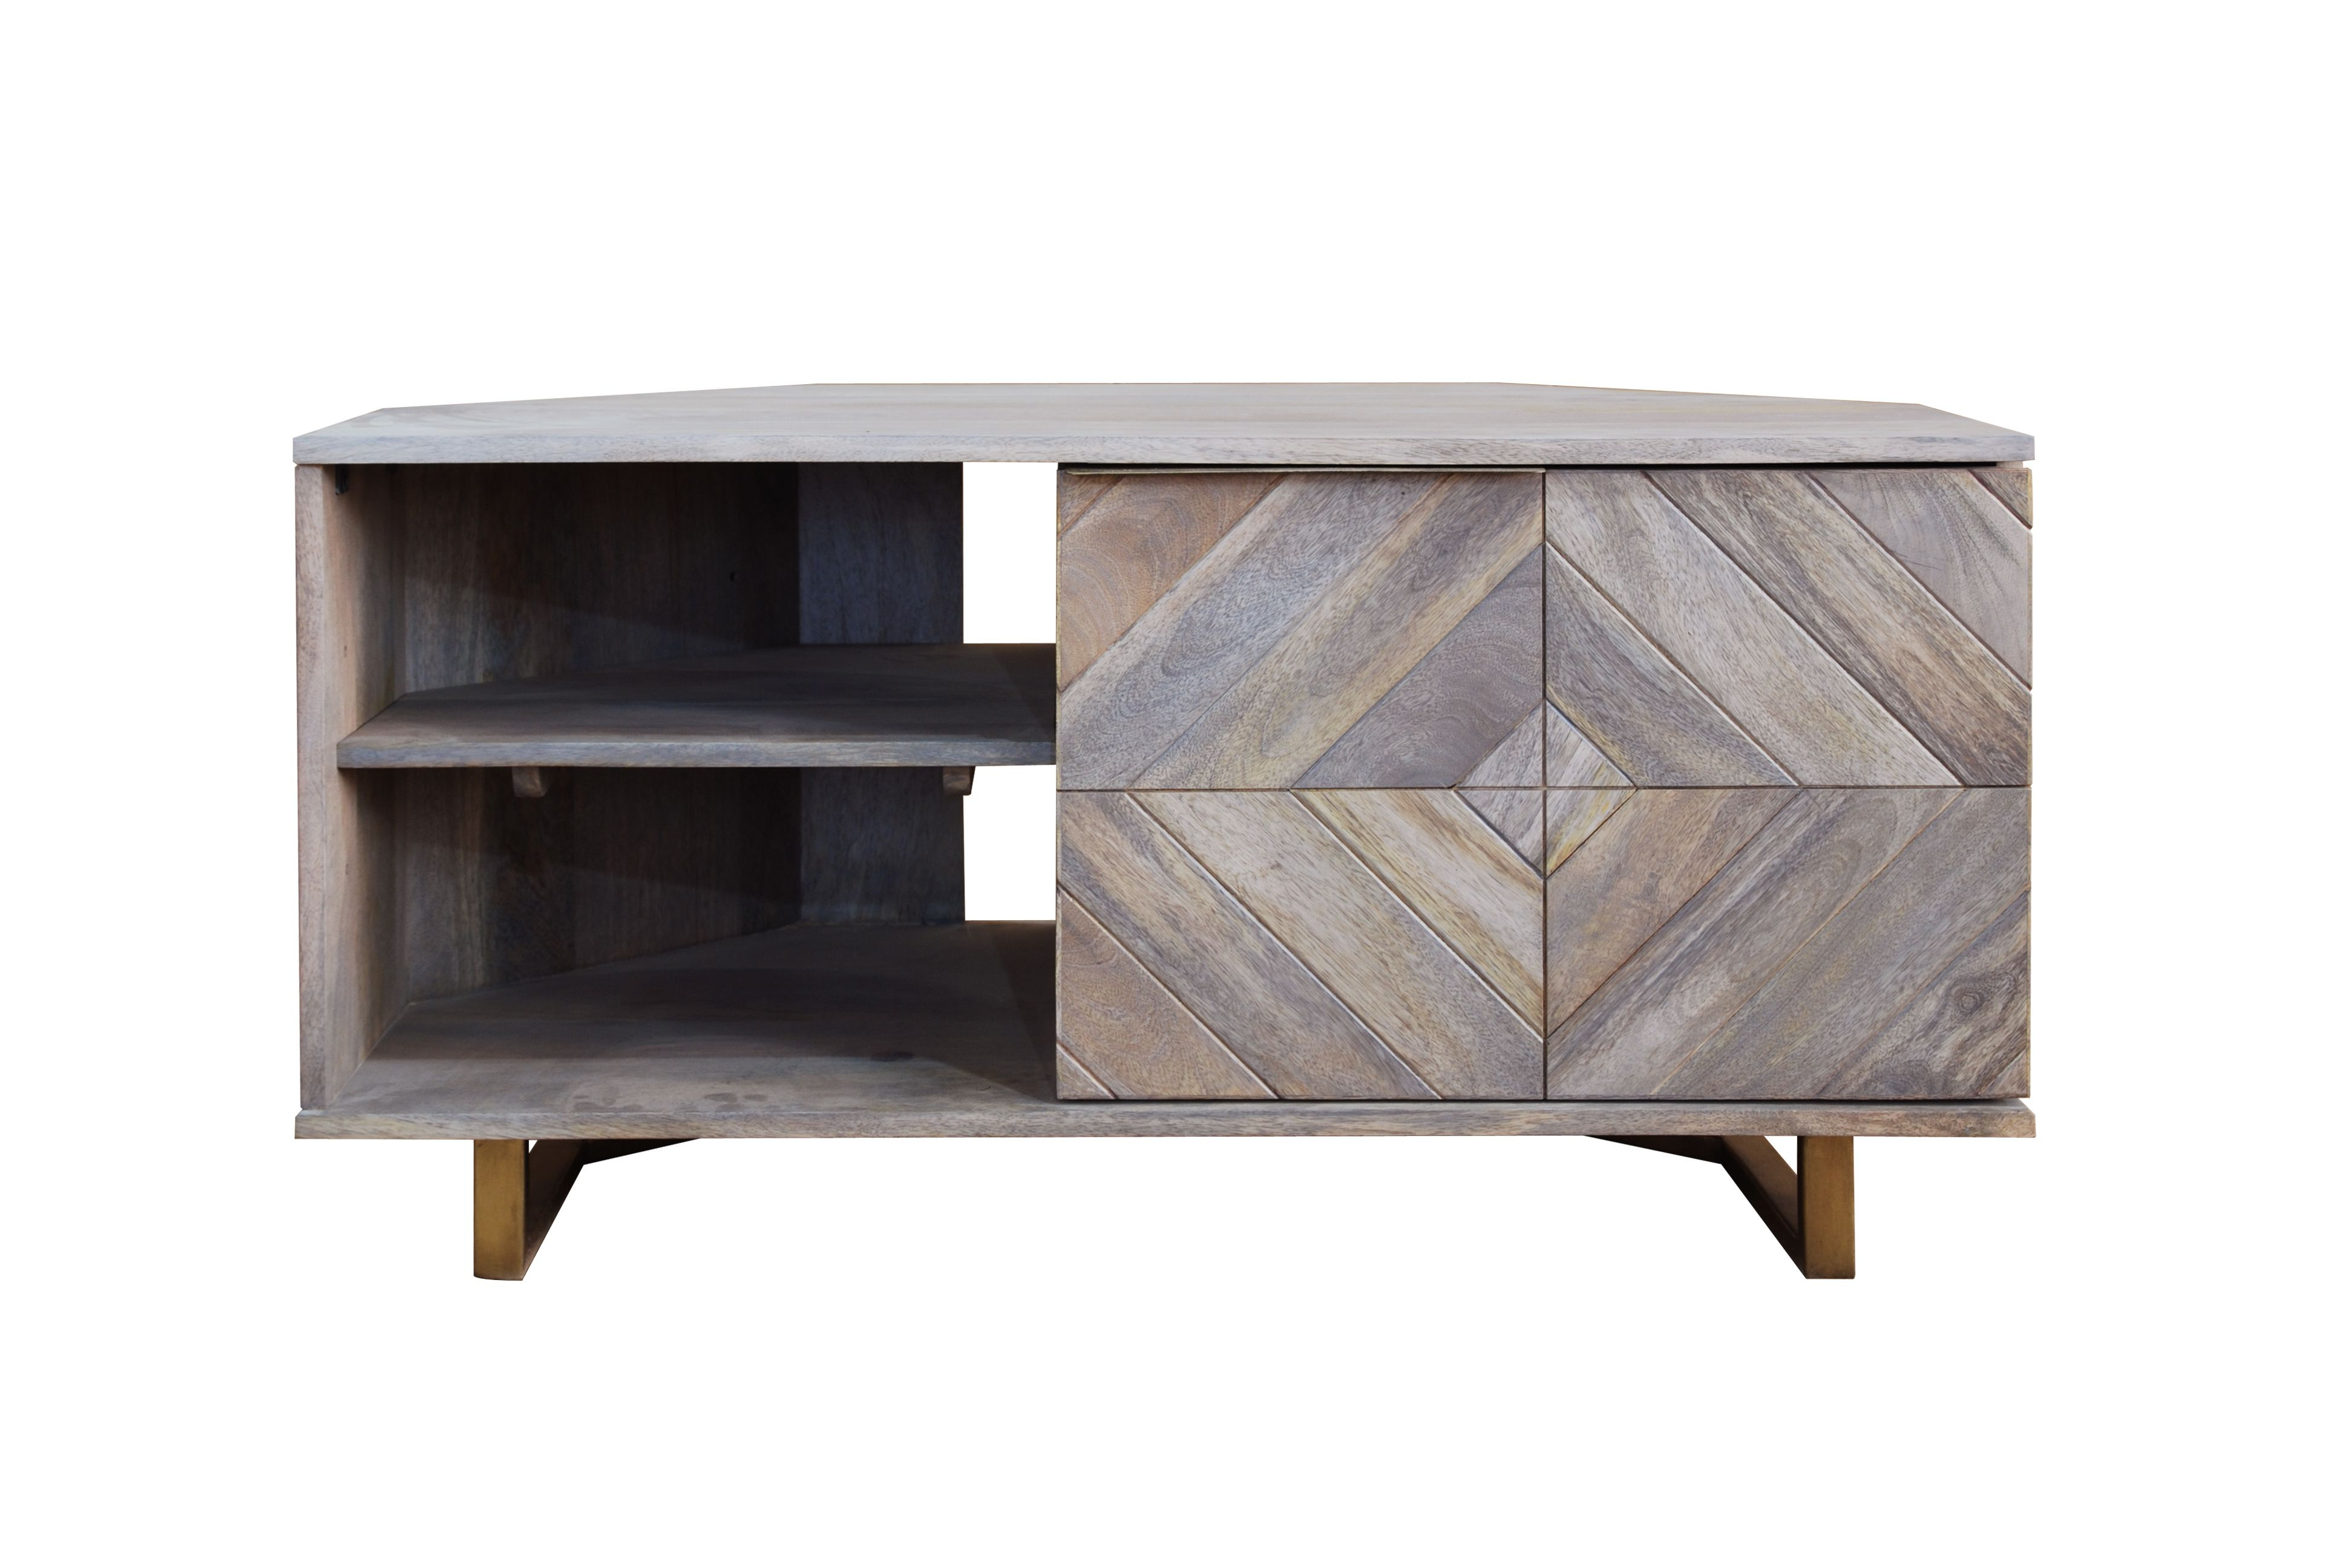 Latest Retro Corner Tv Stand Stands Jual – Buyouapp Throughout Corner Tv Units (View 15 of 20)